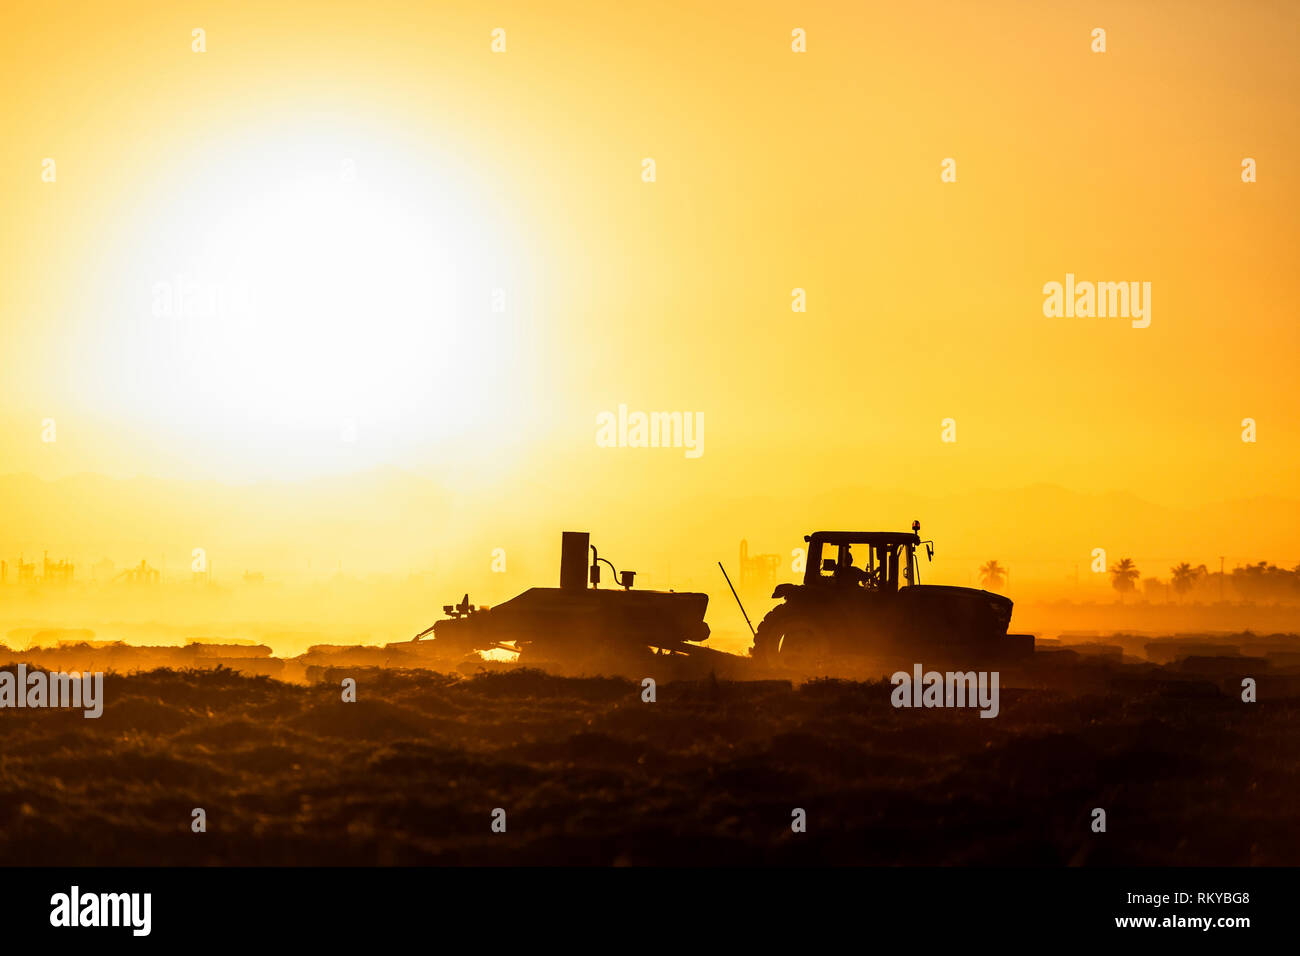 Wide shot of tractor silhouette farming at sunrise. Stock Photo